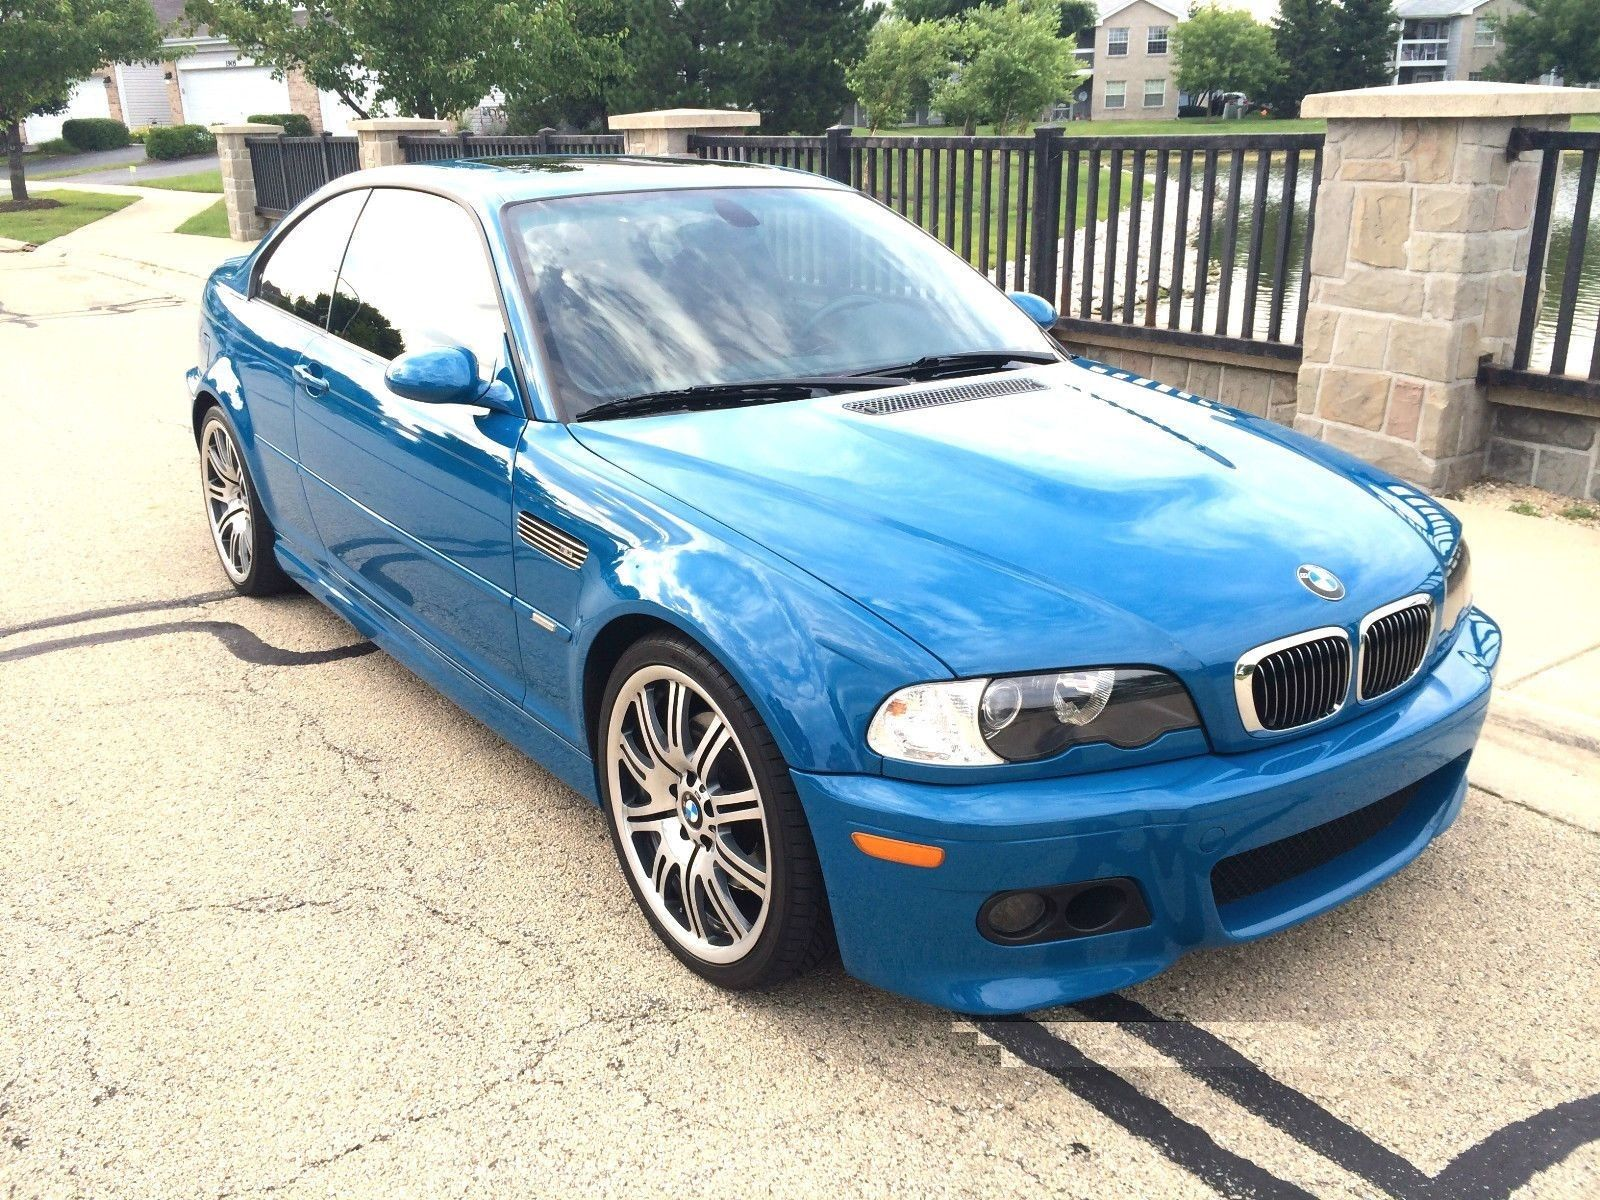 Used BMW M3 E46 Sports Coupes For Sale #BMWM3E46 #BMWM3E46ForSale ...